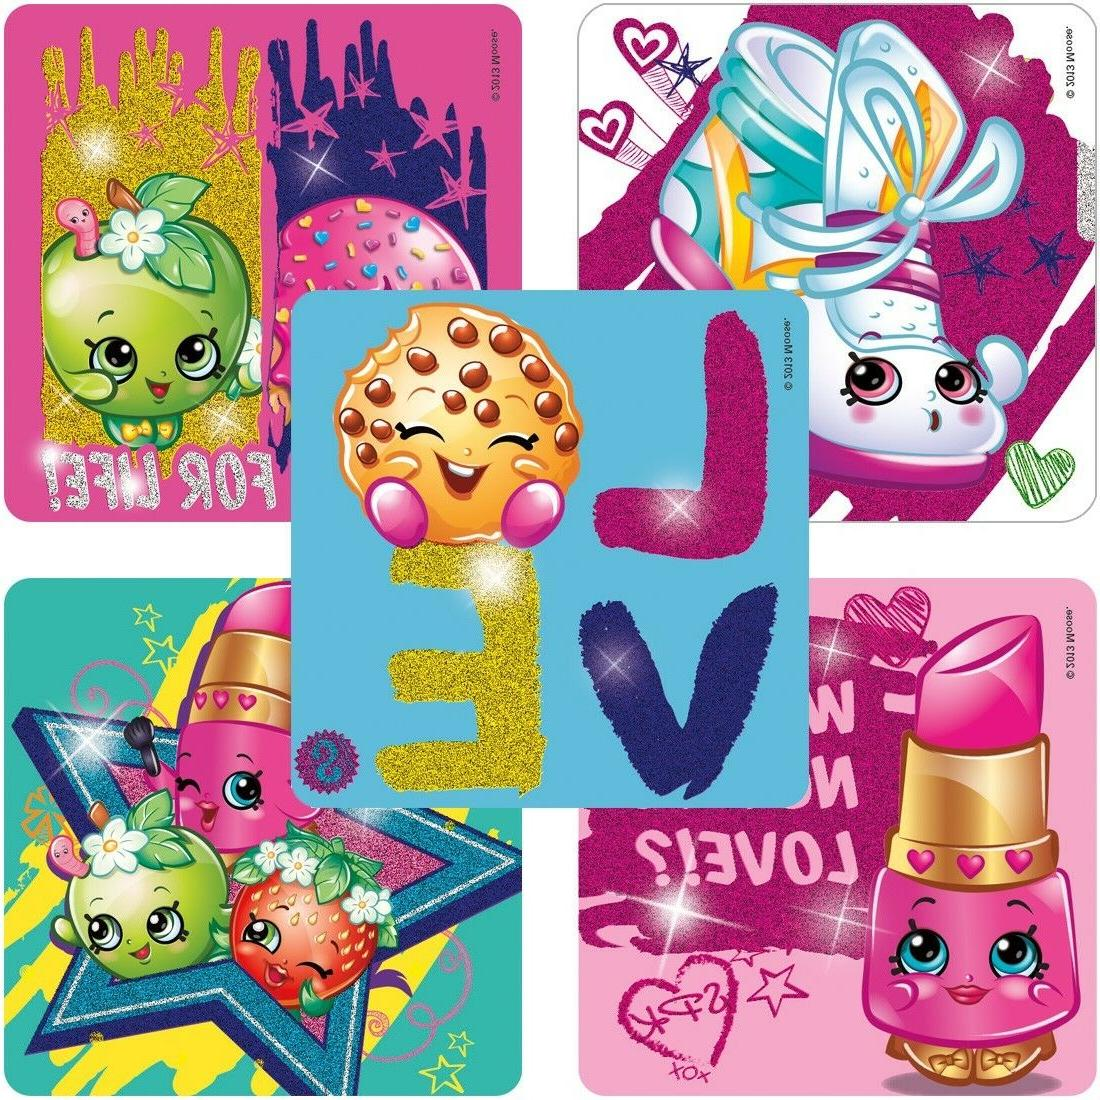 25 shopkins glitter stickers party favors supplies